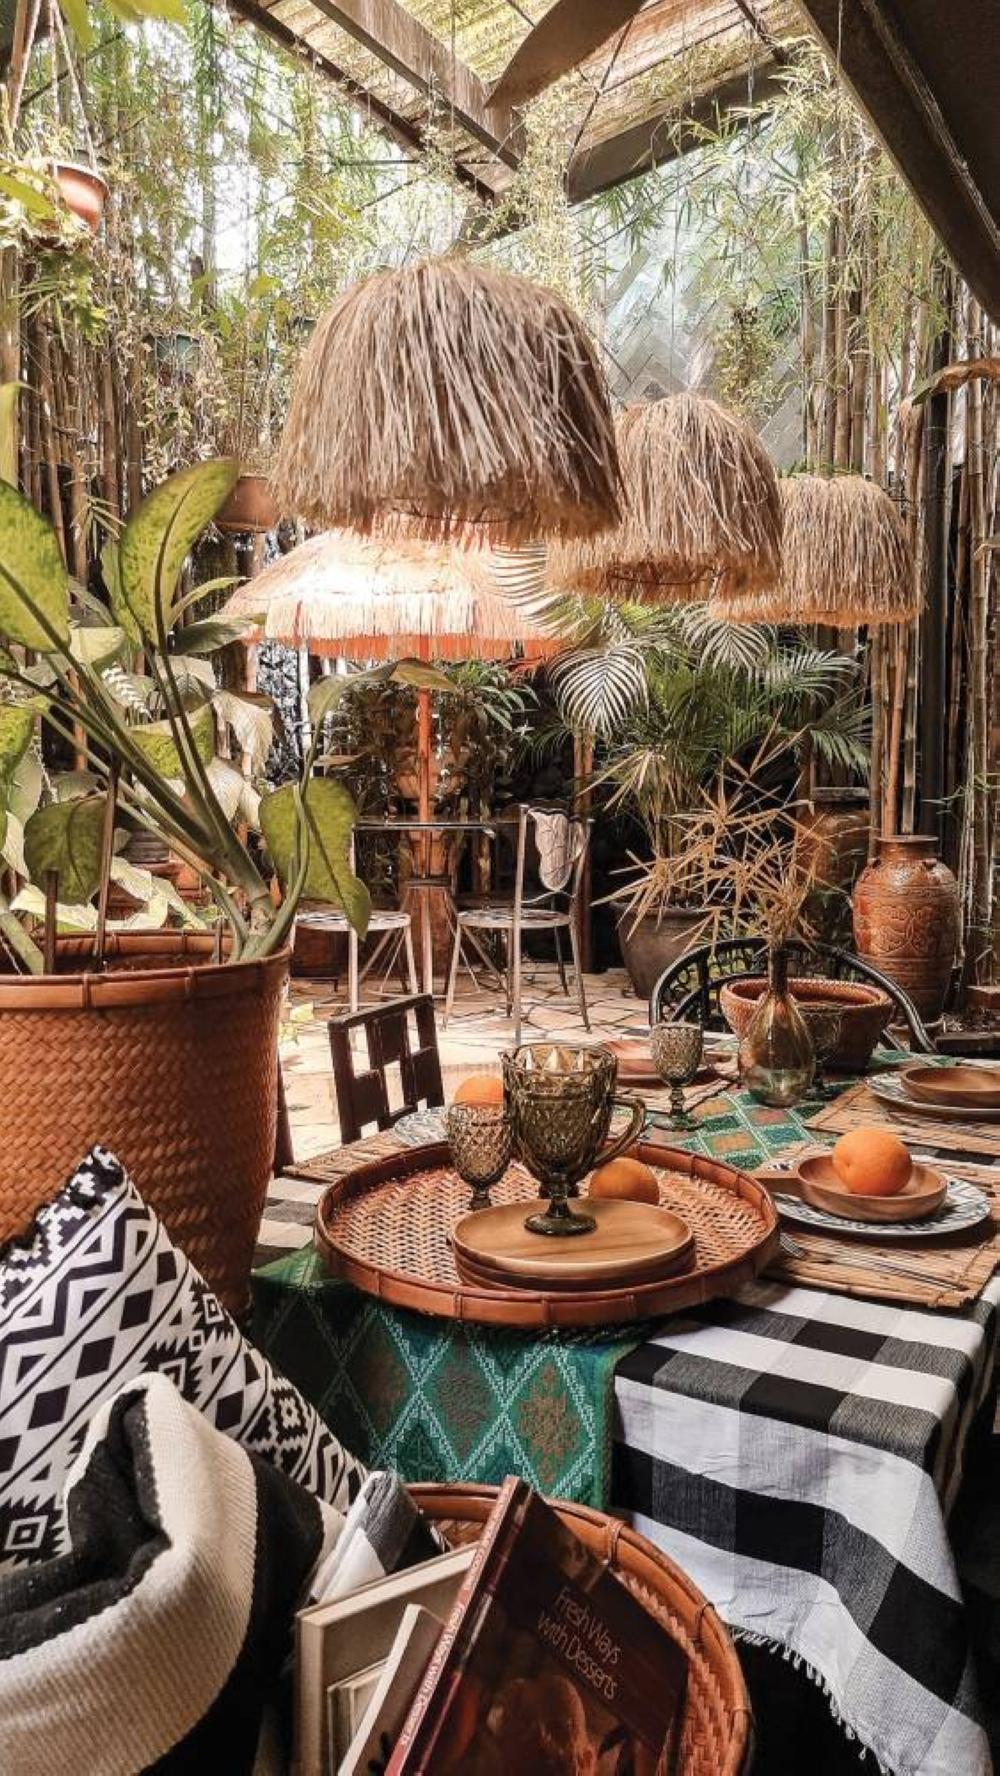 Inspired by nature and crafted by local artisans for your home.